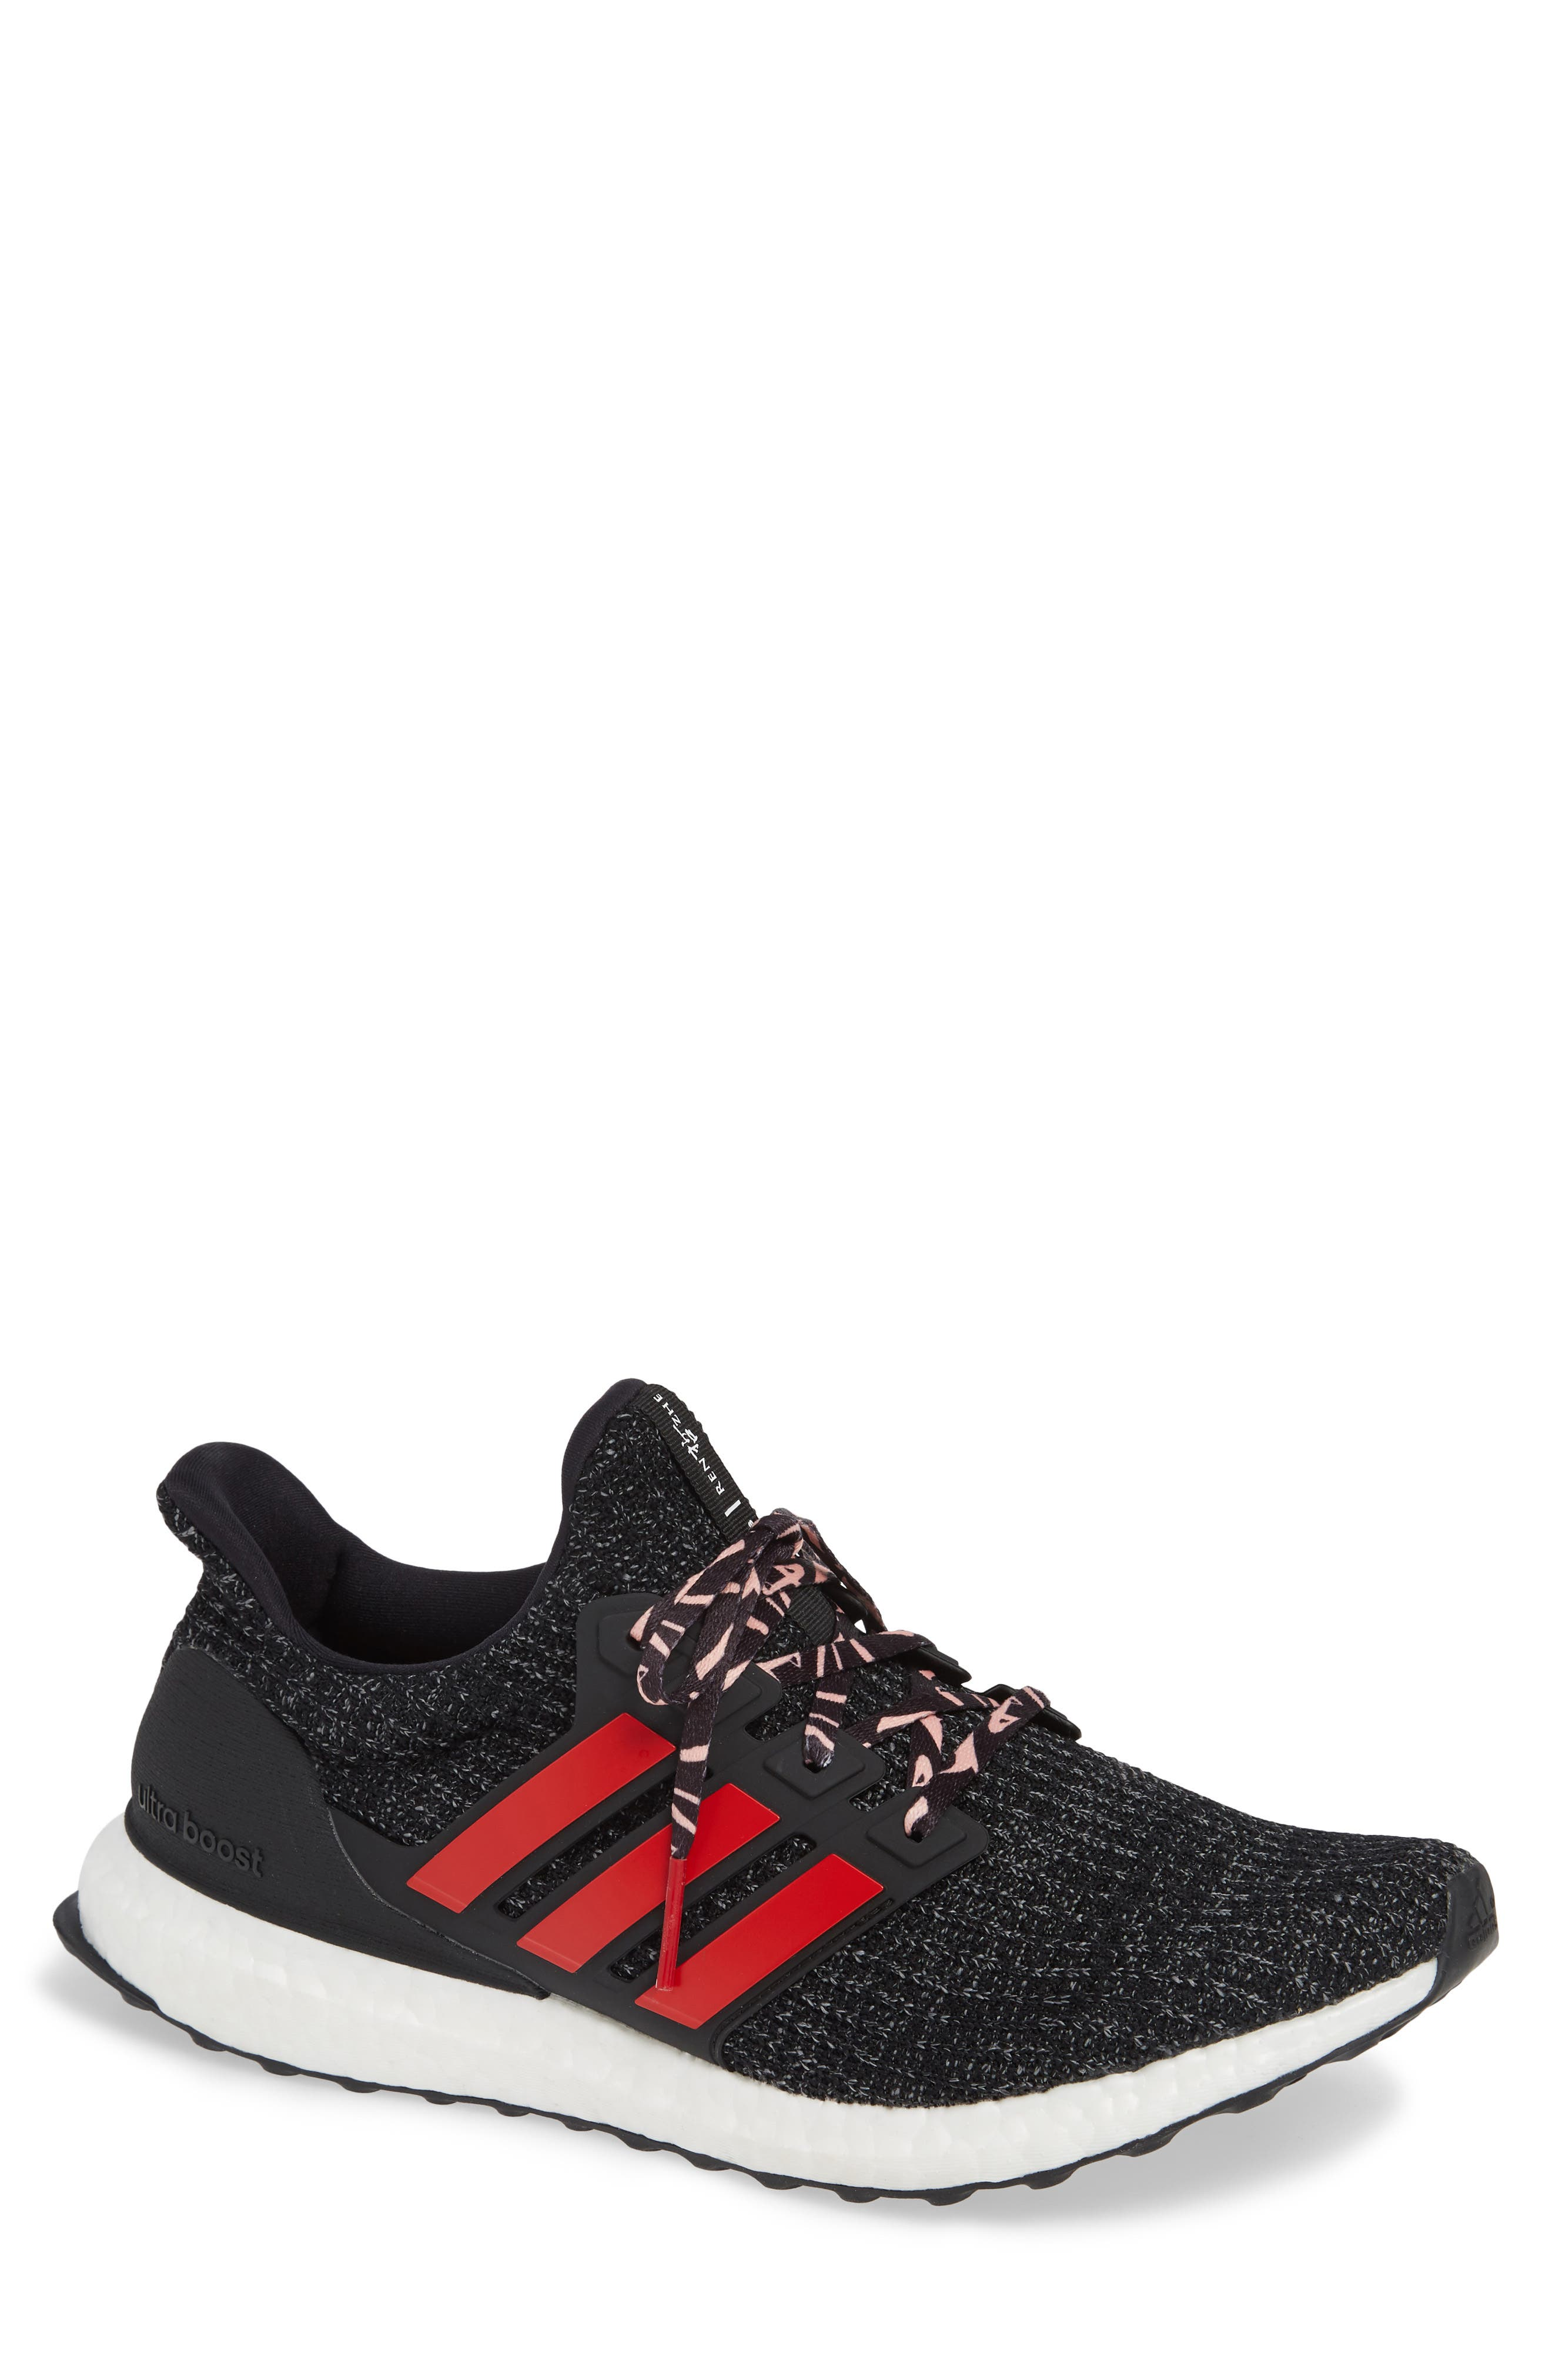 986cd372e adidas - Men s Casual Fashion Shoes and Sneakers